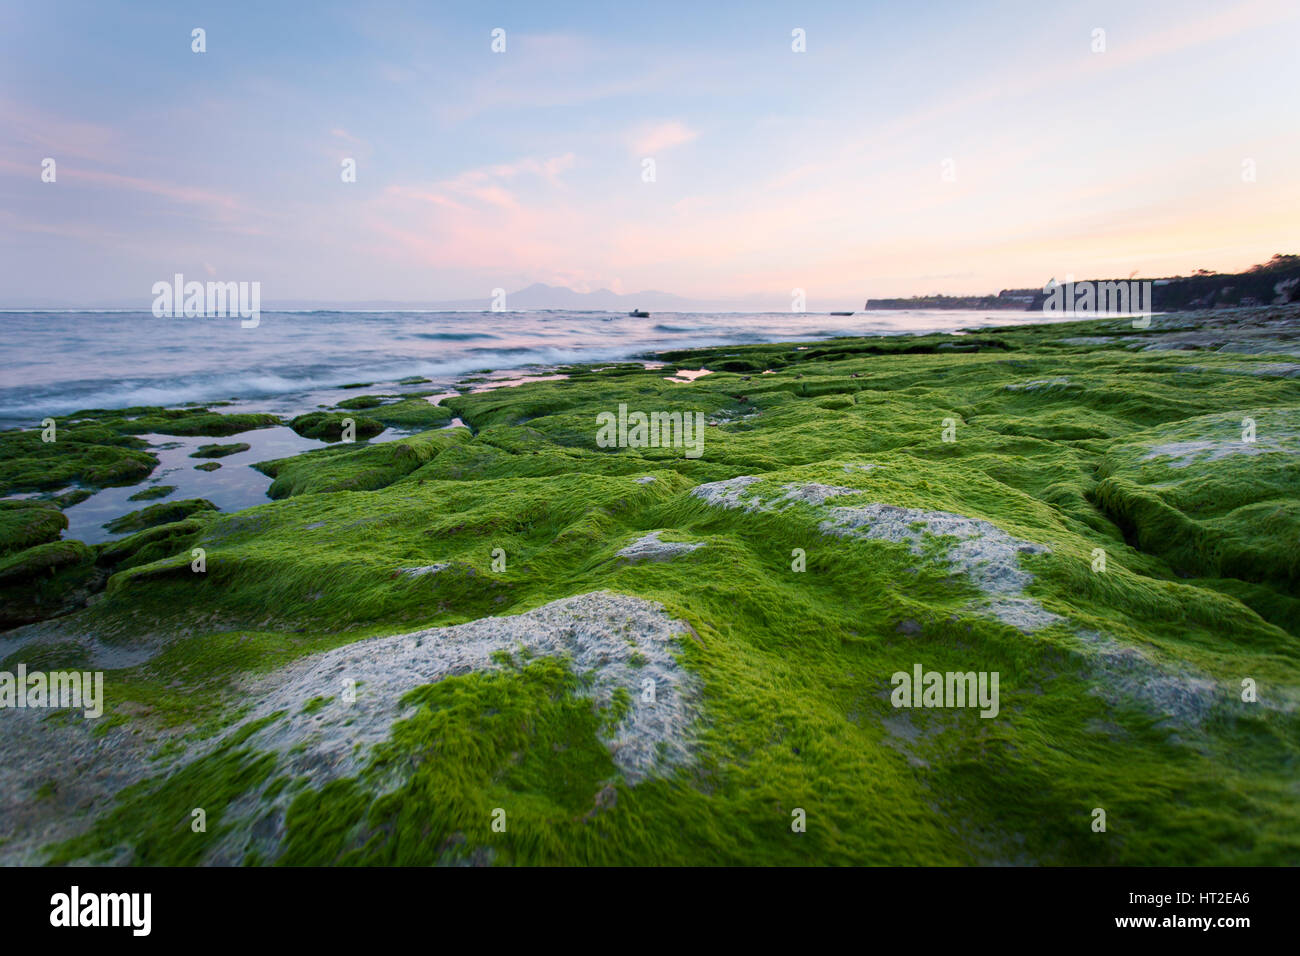 Rocky shore covered with green algae in the early morning with mountain views - Stock Image